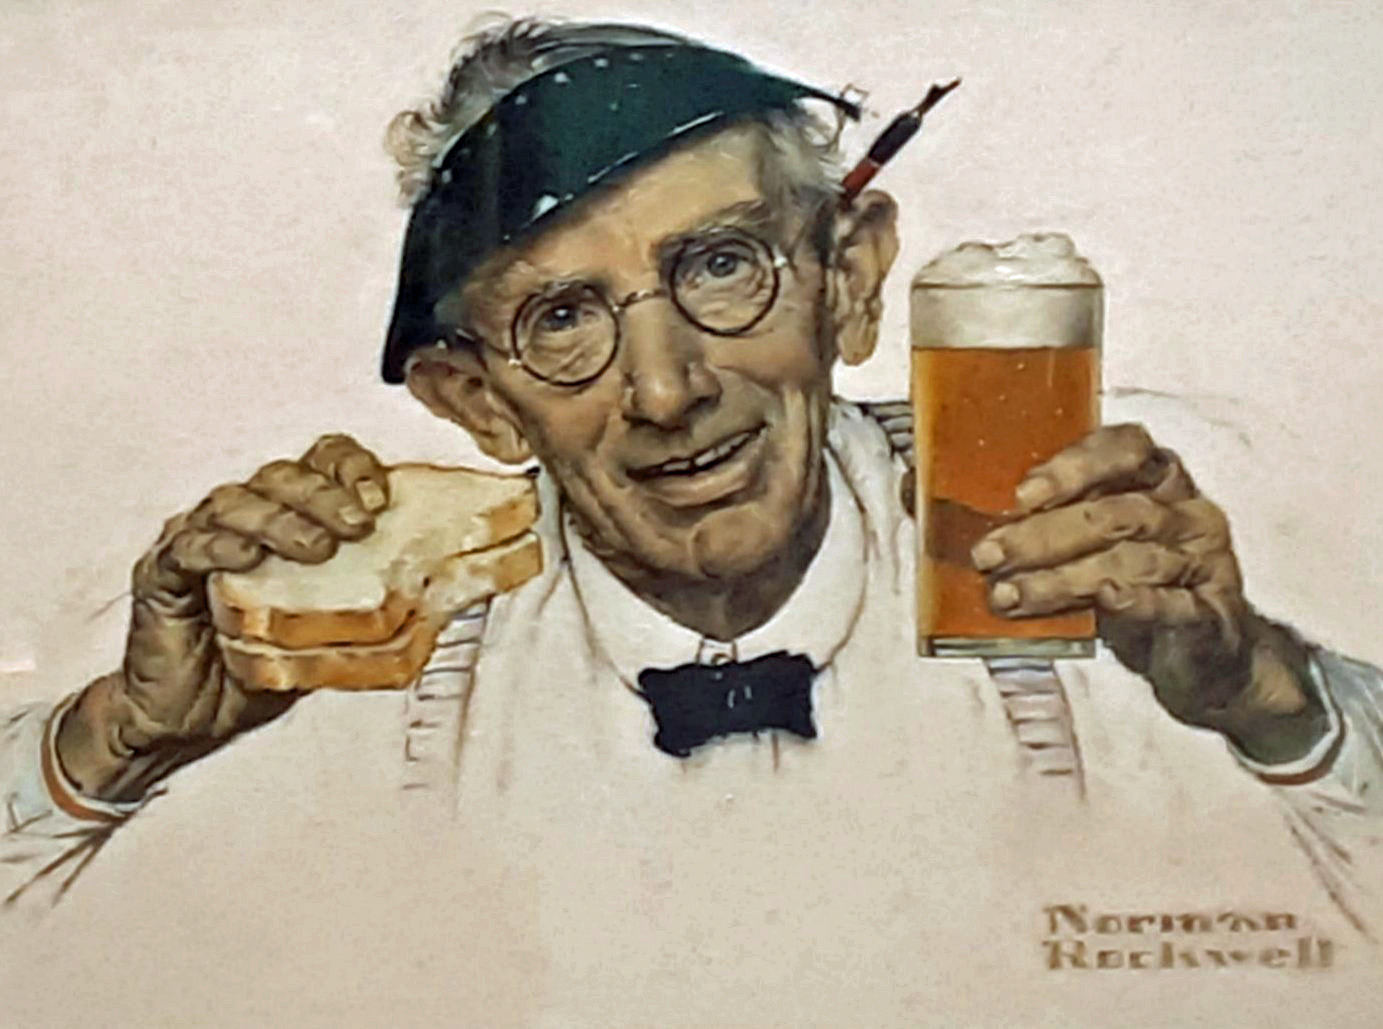 Norman Rockwell,'Man with Sandwich and Glass of Beer (1941)'